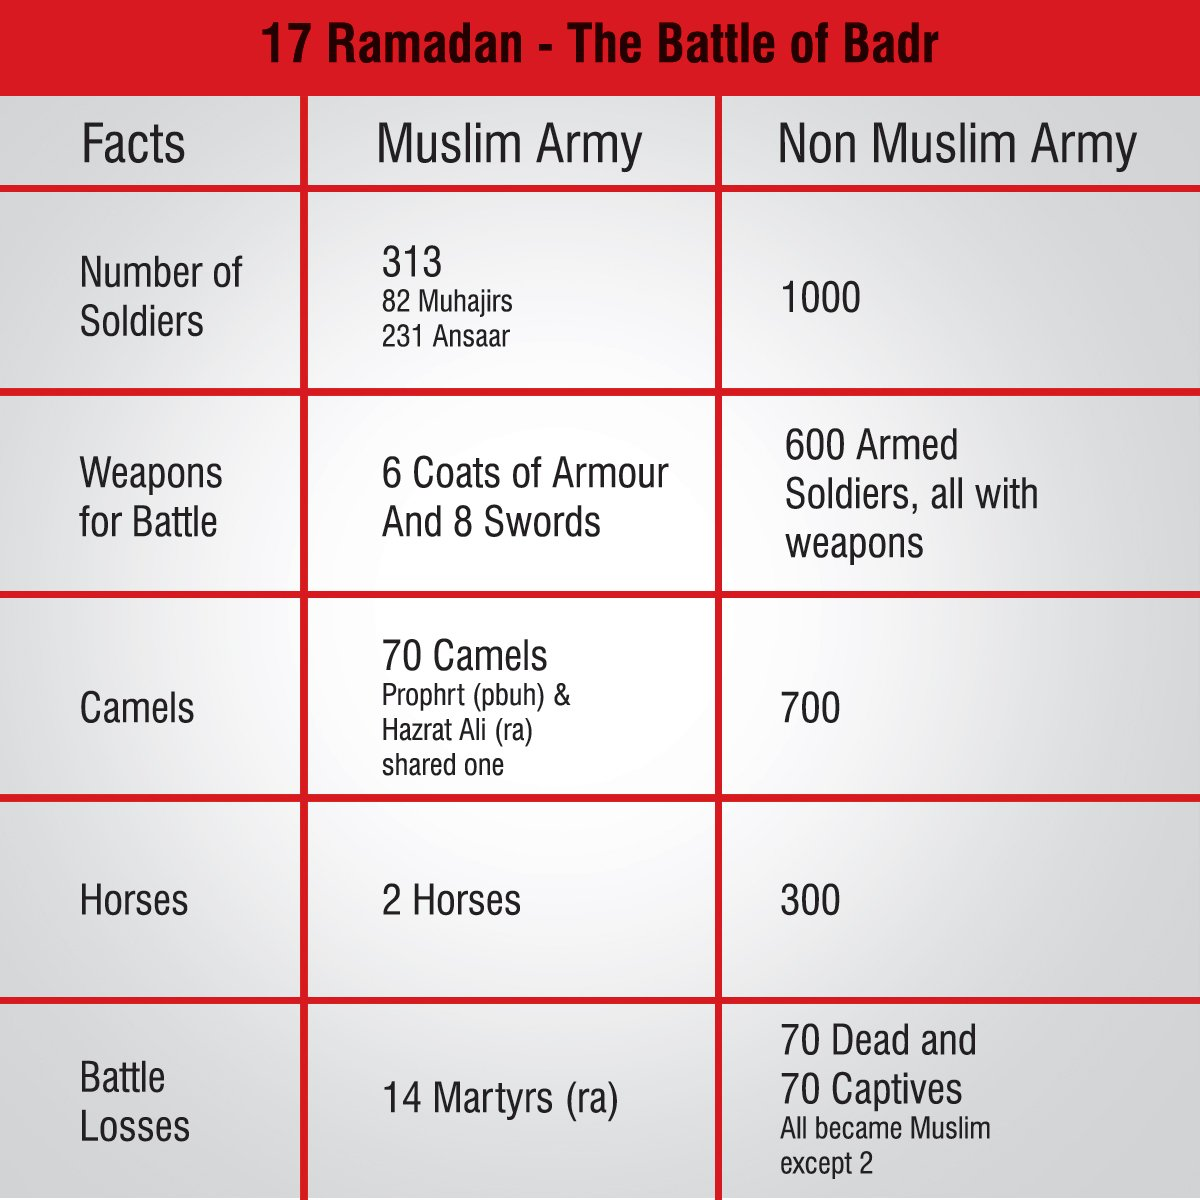 Emaan Idrees On Twitter The Facts About Battle Of Badr